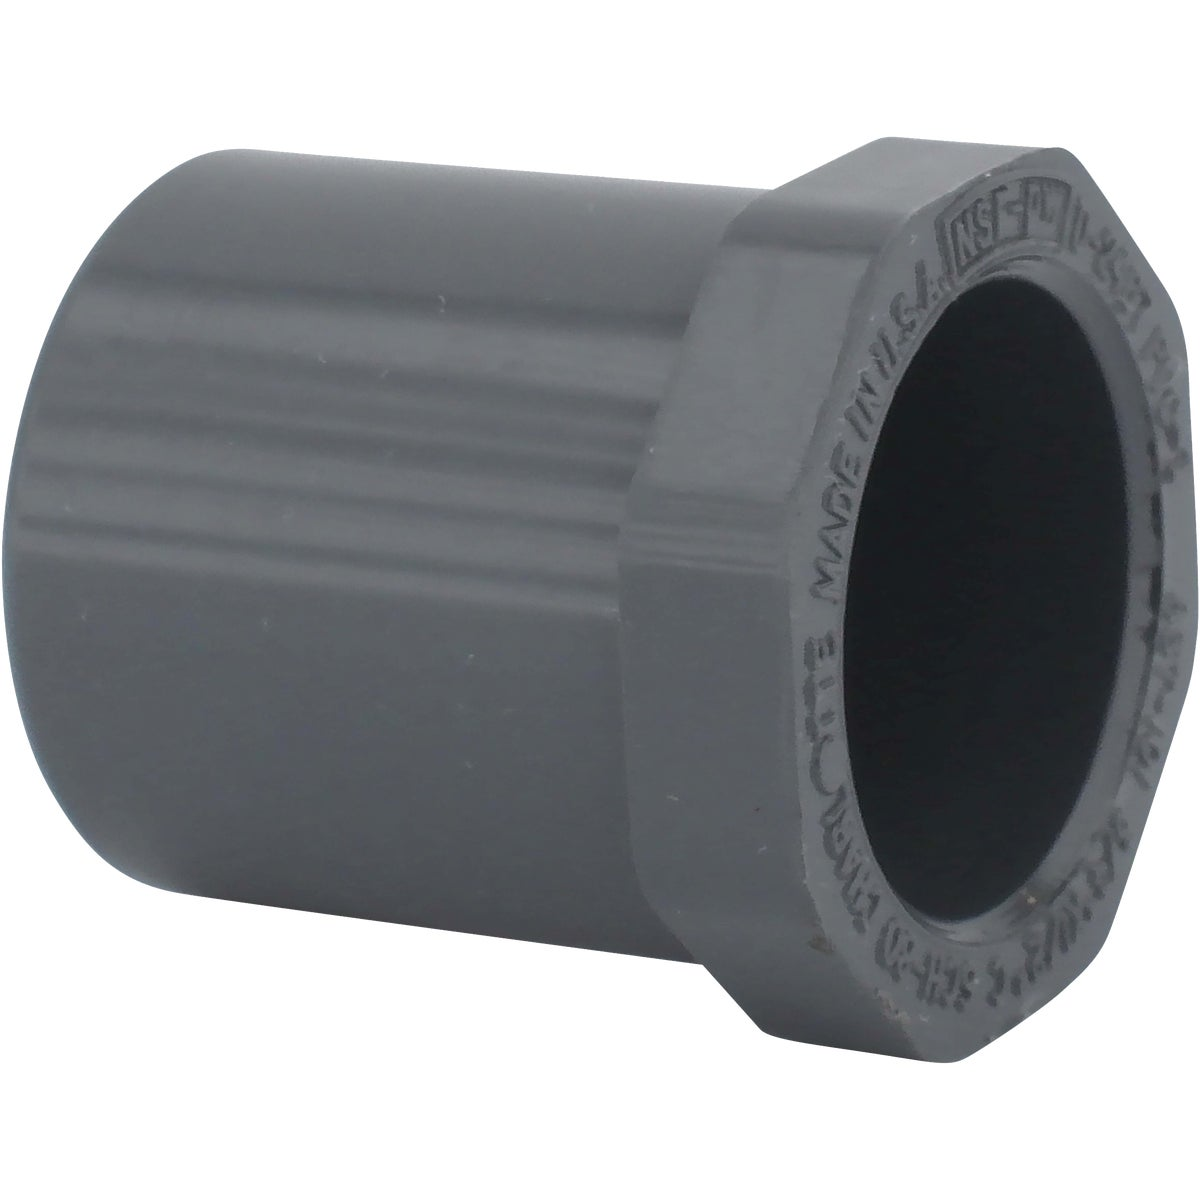 3/4X1/2 SPXS PVC BUSHING - 302758 by Genova Inc